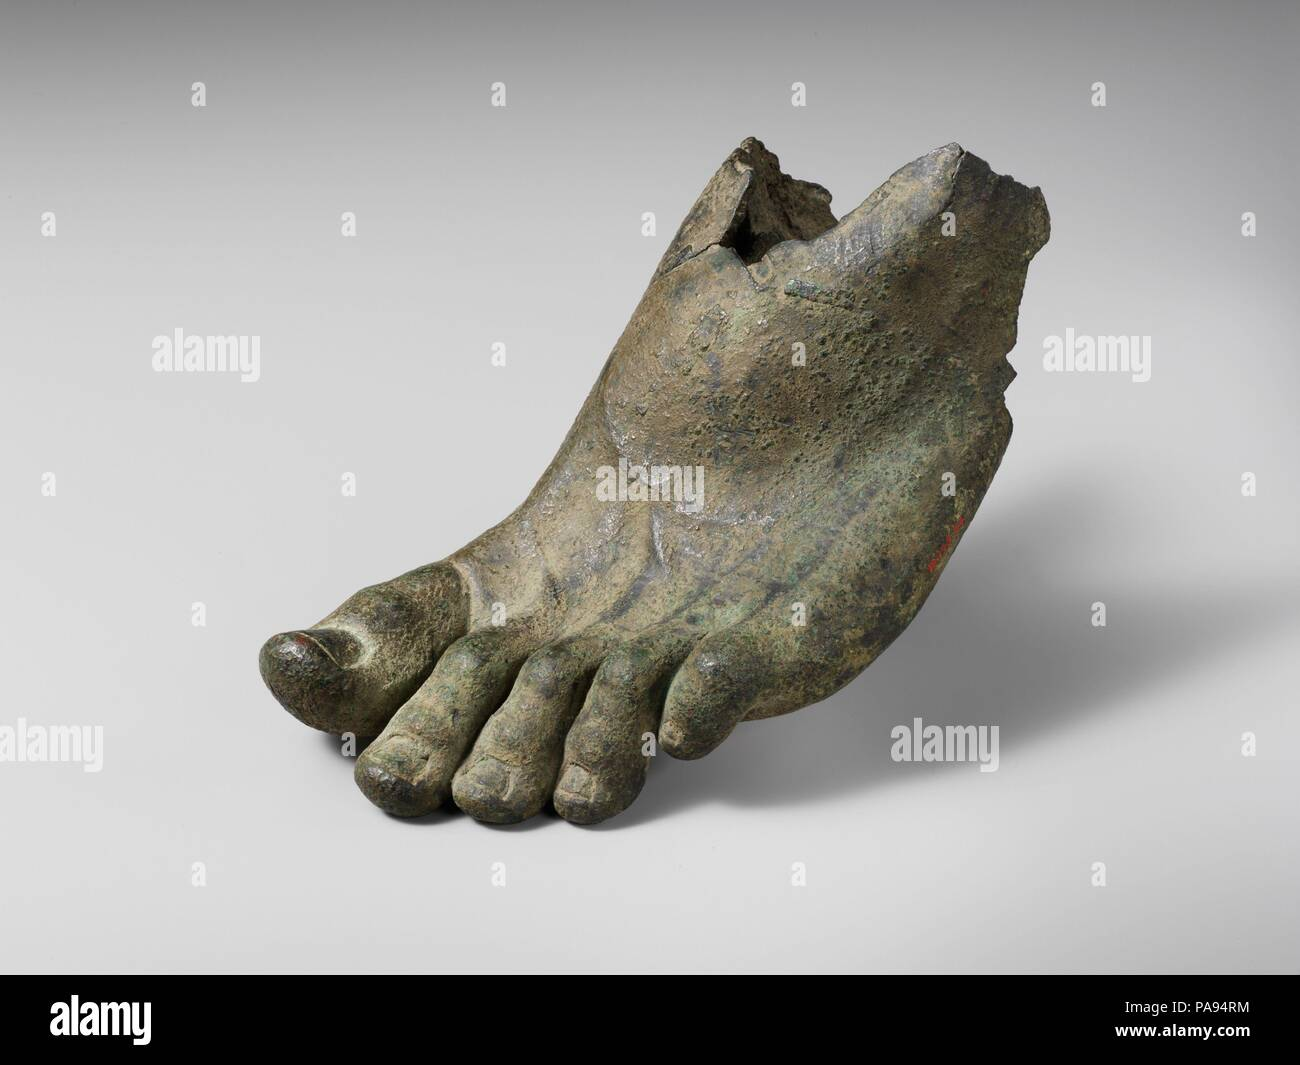 Bronze left foot with traces of sandal straps. Culture: Roman. Dimensions: Overall: 4 7/8 x 9 5/16 in. (12.4 x 23.7 cm). Date: 1st or 2nd century A.D.  Left foot with sandal straps. Museum: Metropolitan Museum of Art, New York, USA. - Stock Image